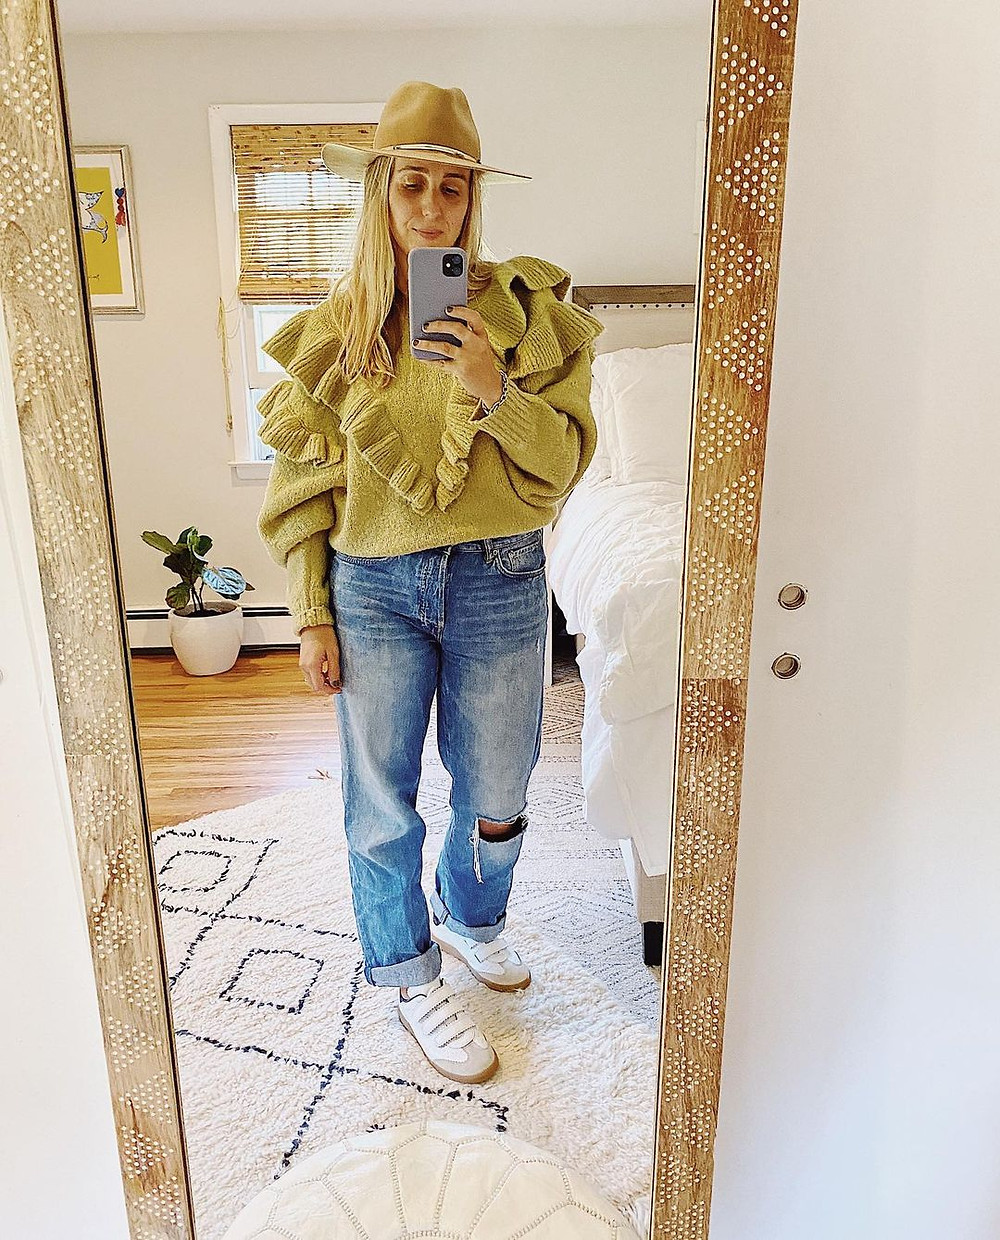 cooper mcmanus wearing a travel outfit and hat